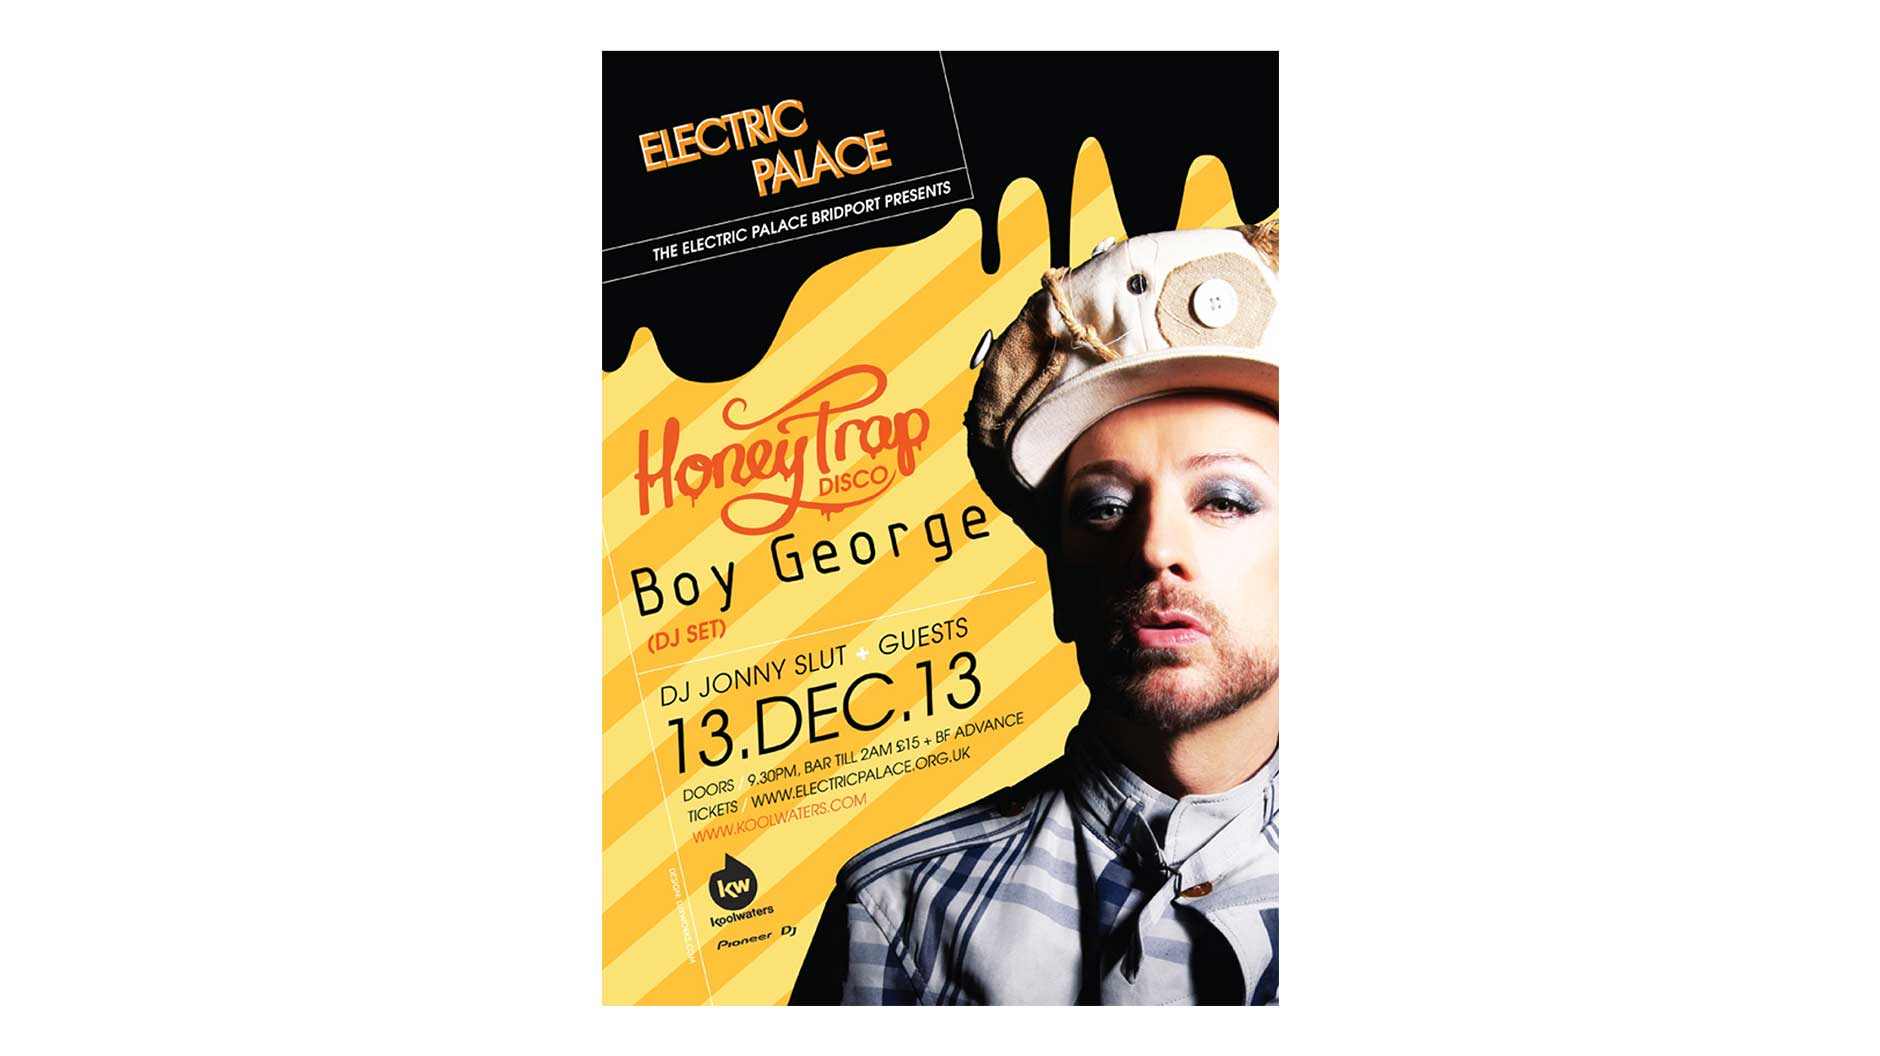 Electric Palace Boy George poster design